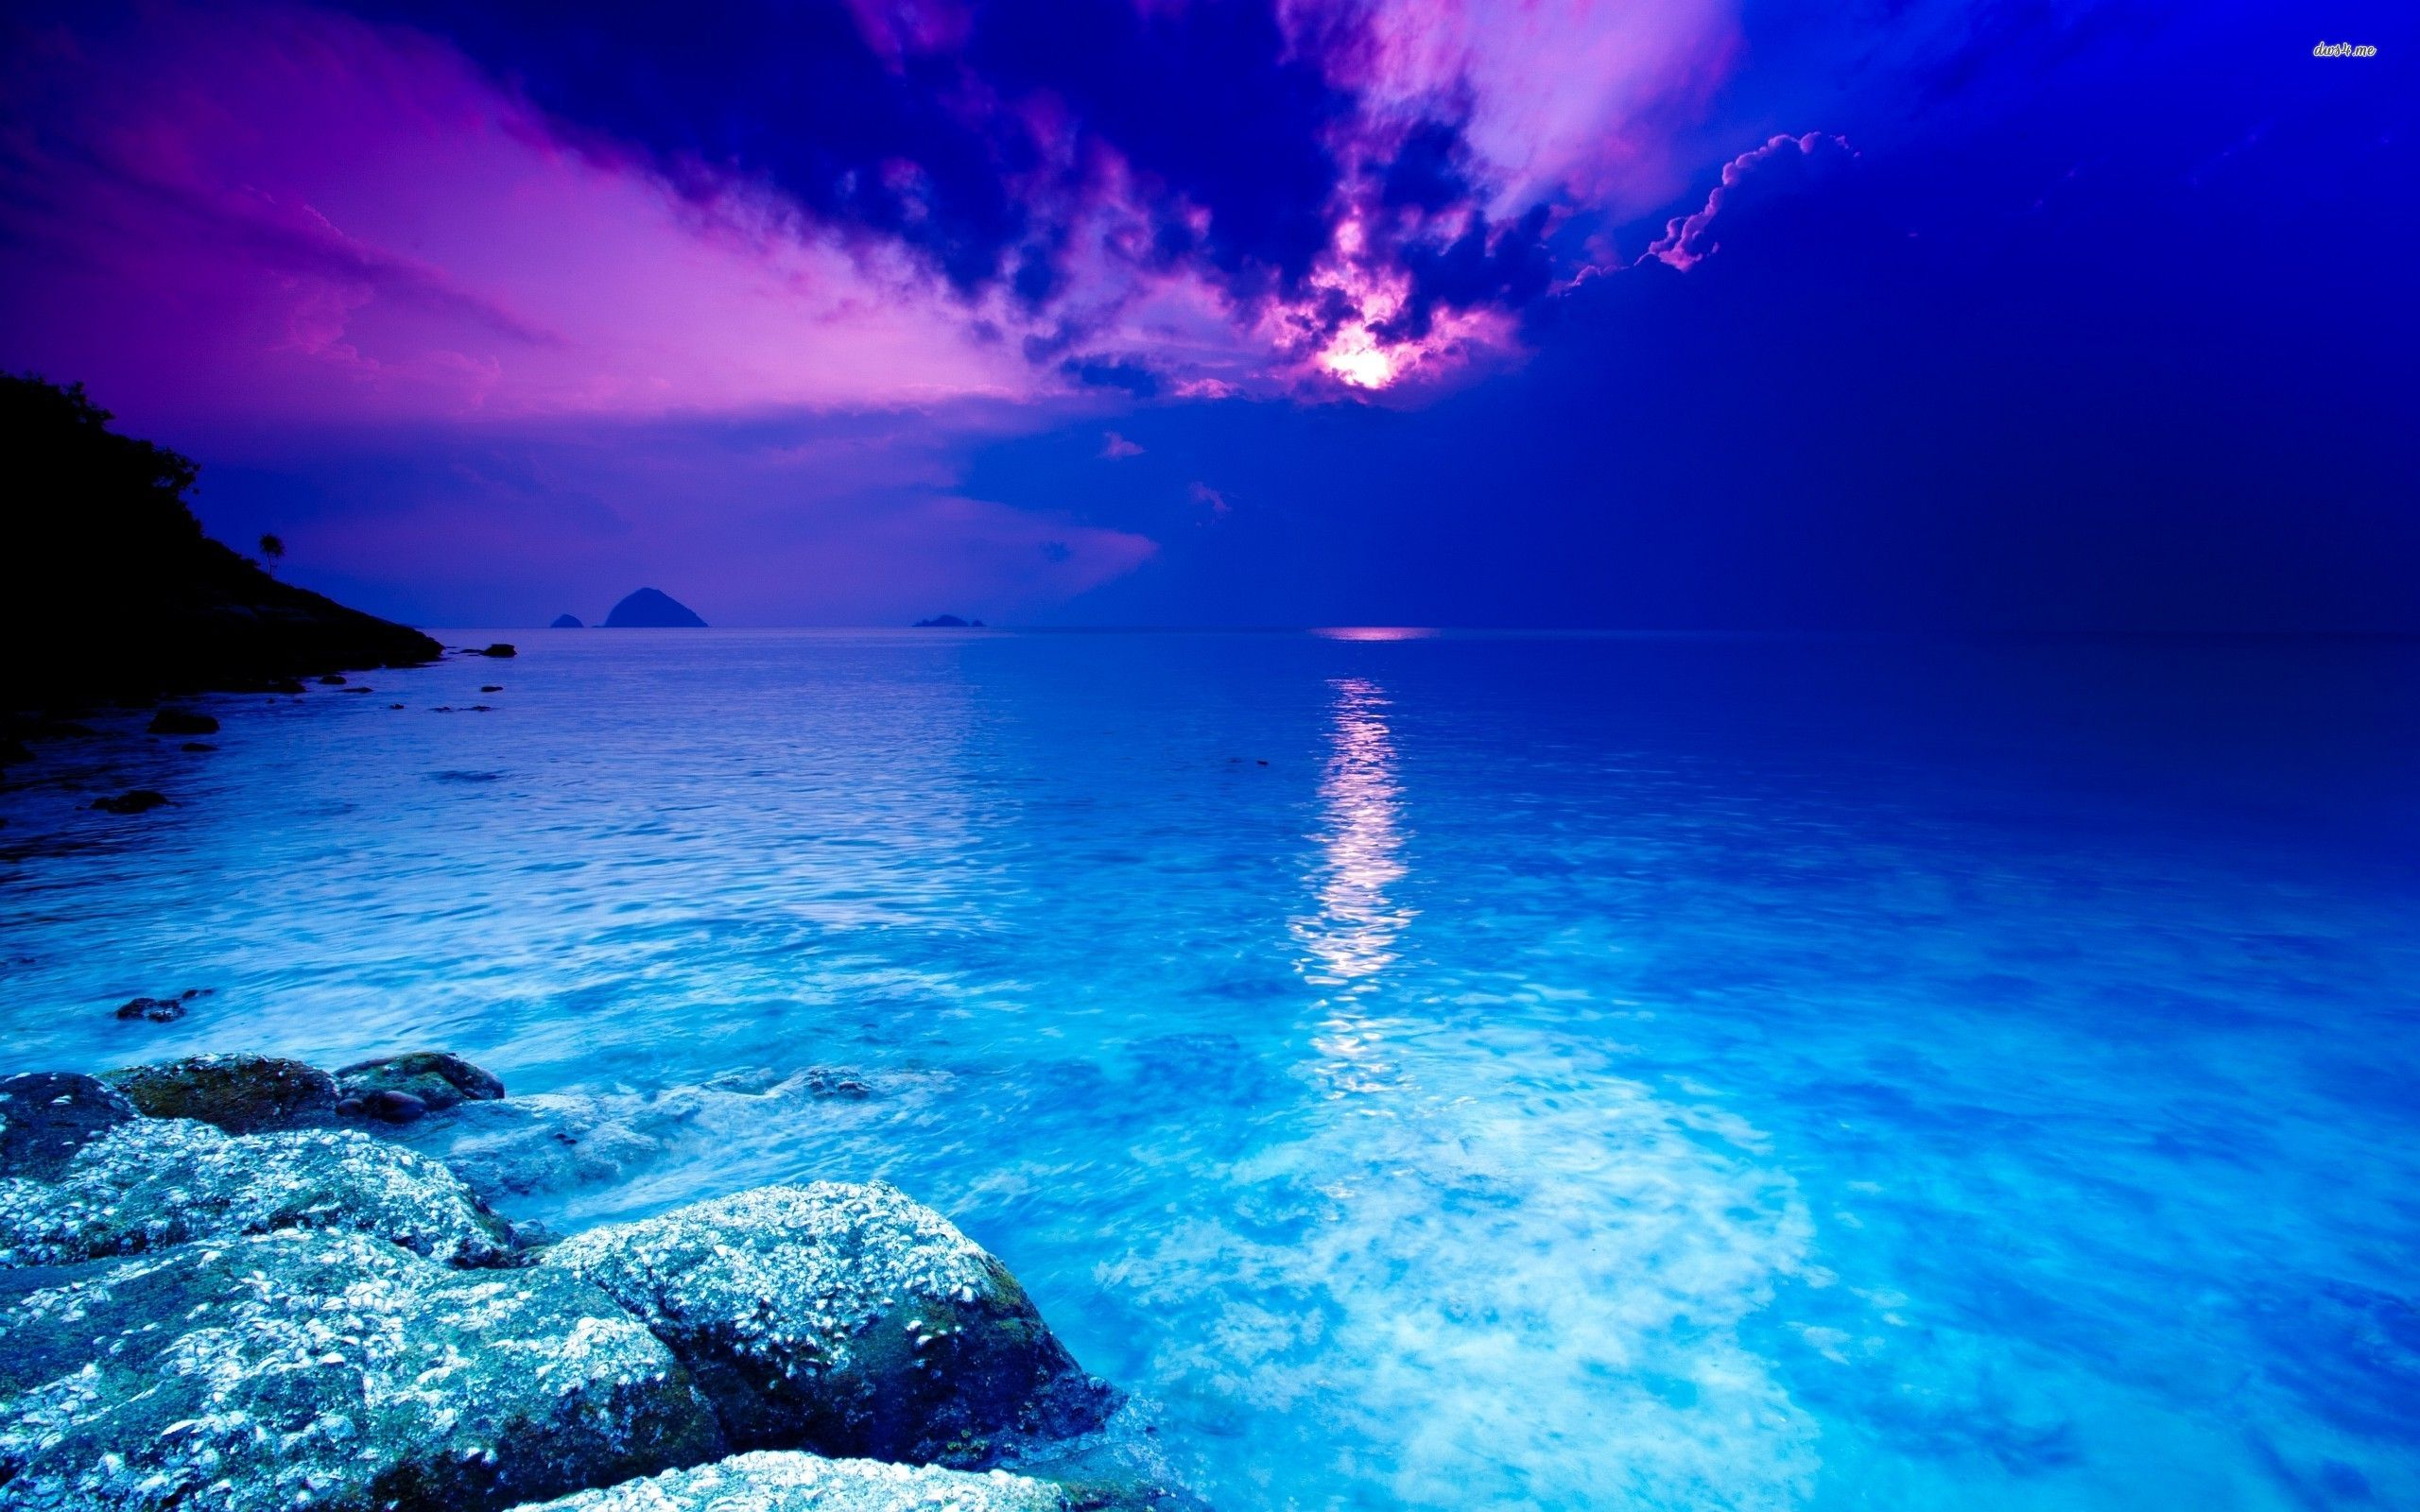 Blue Ocean Wallpaper Beach Wallpapers 14710 Ocean